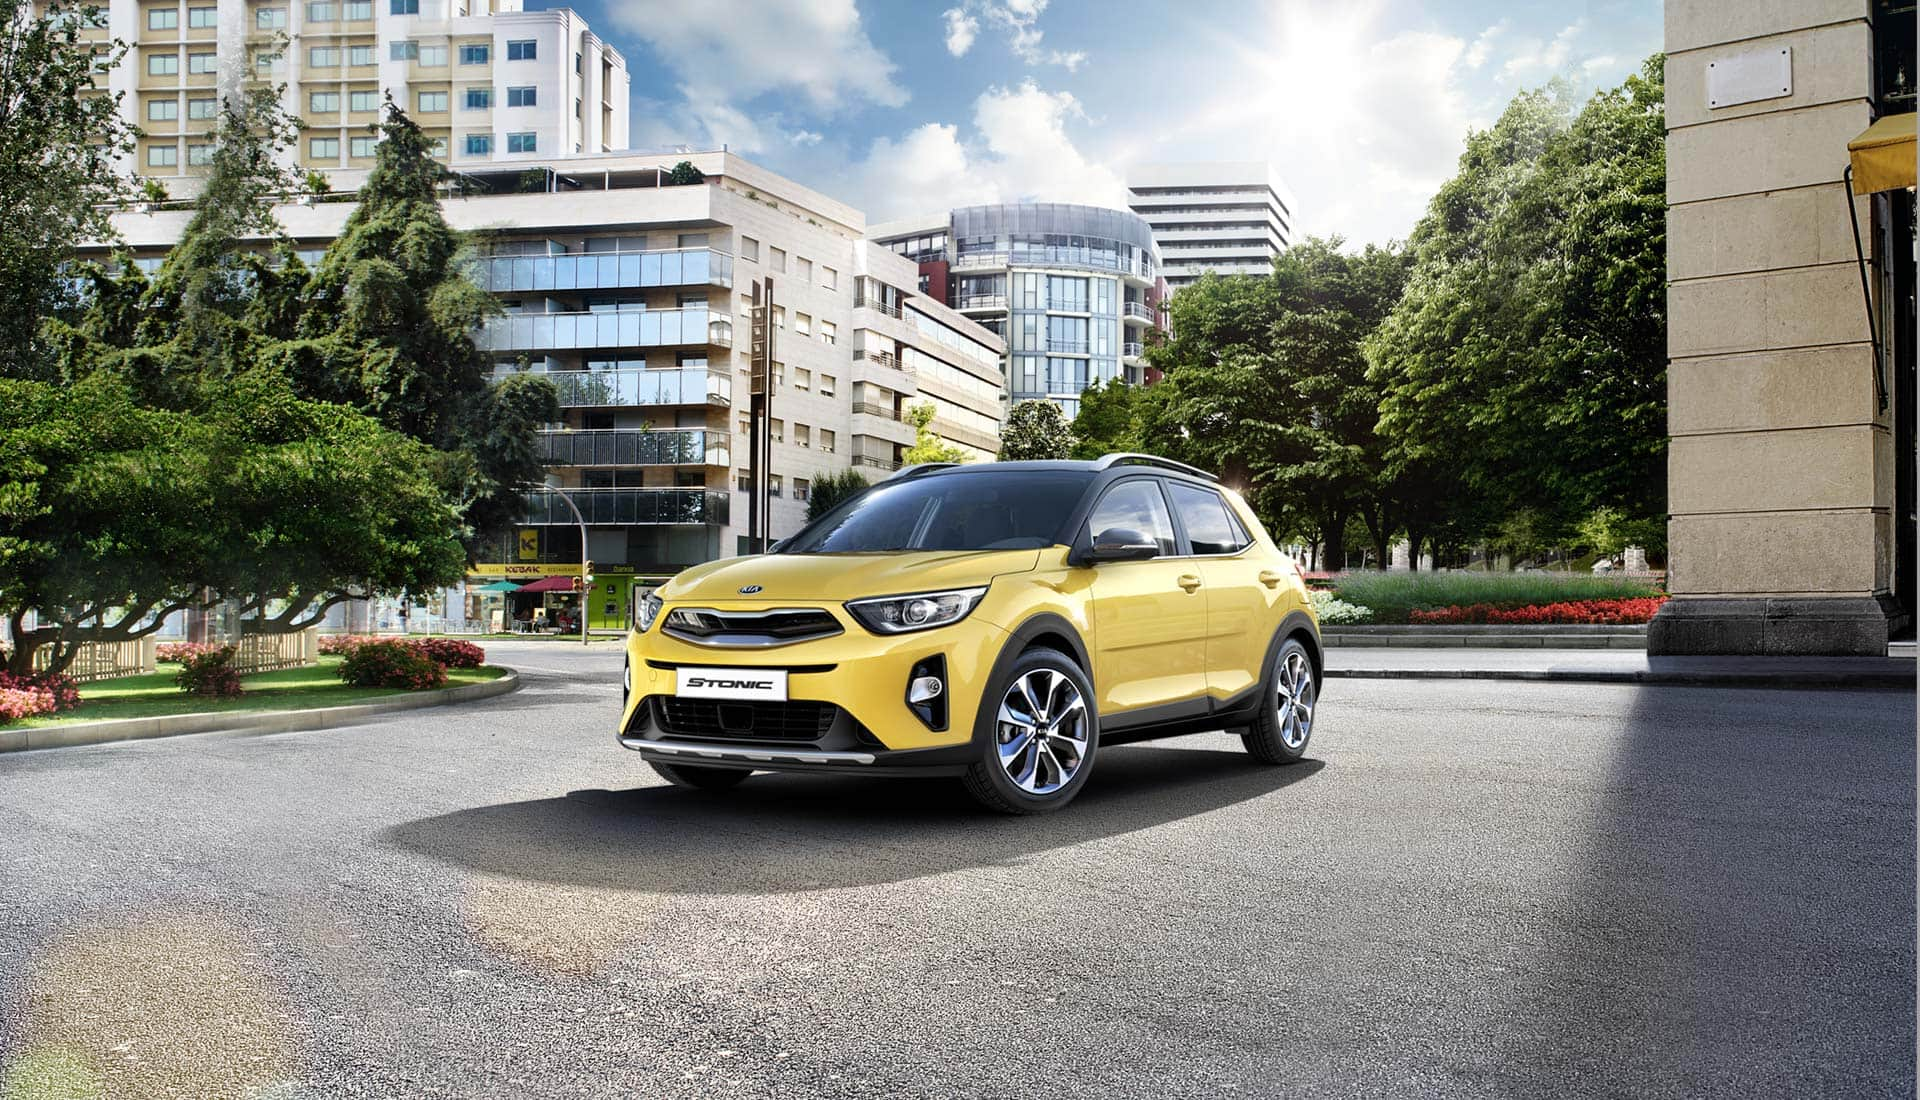 d ceed buzz cee releases kia official image first of next generation